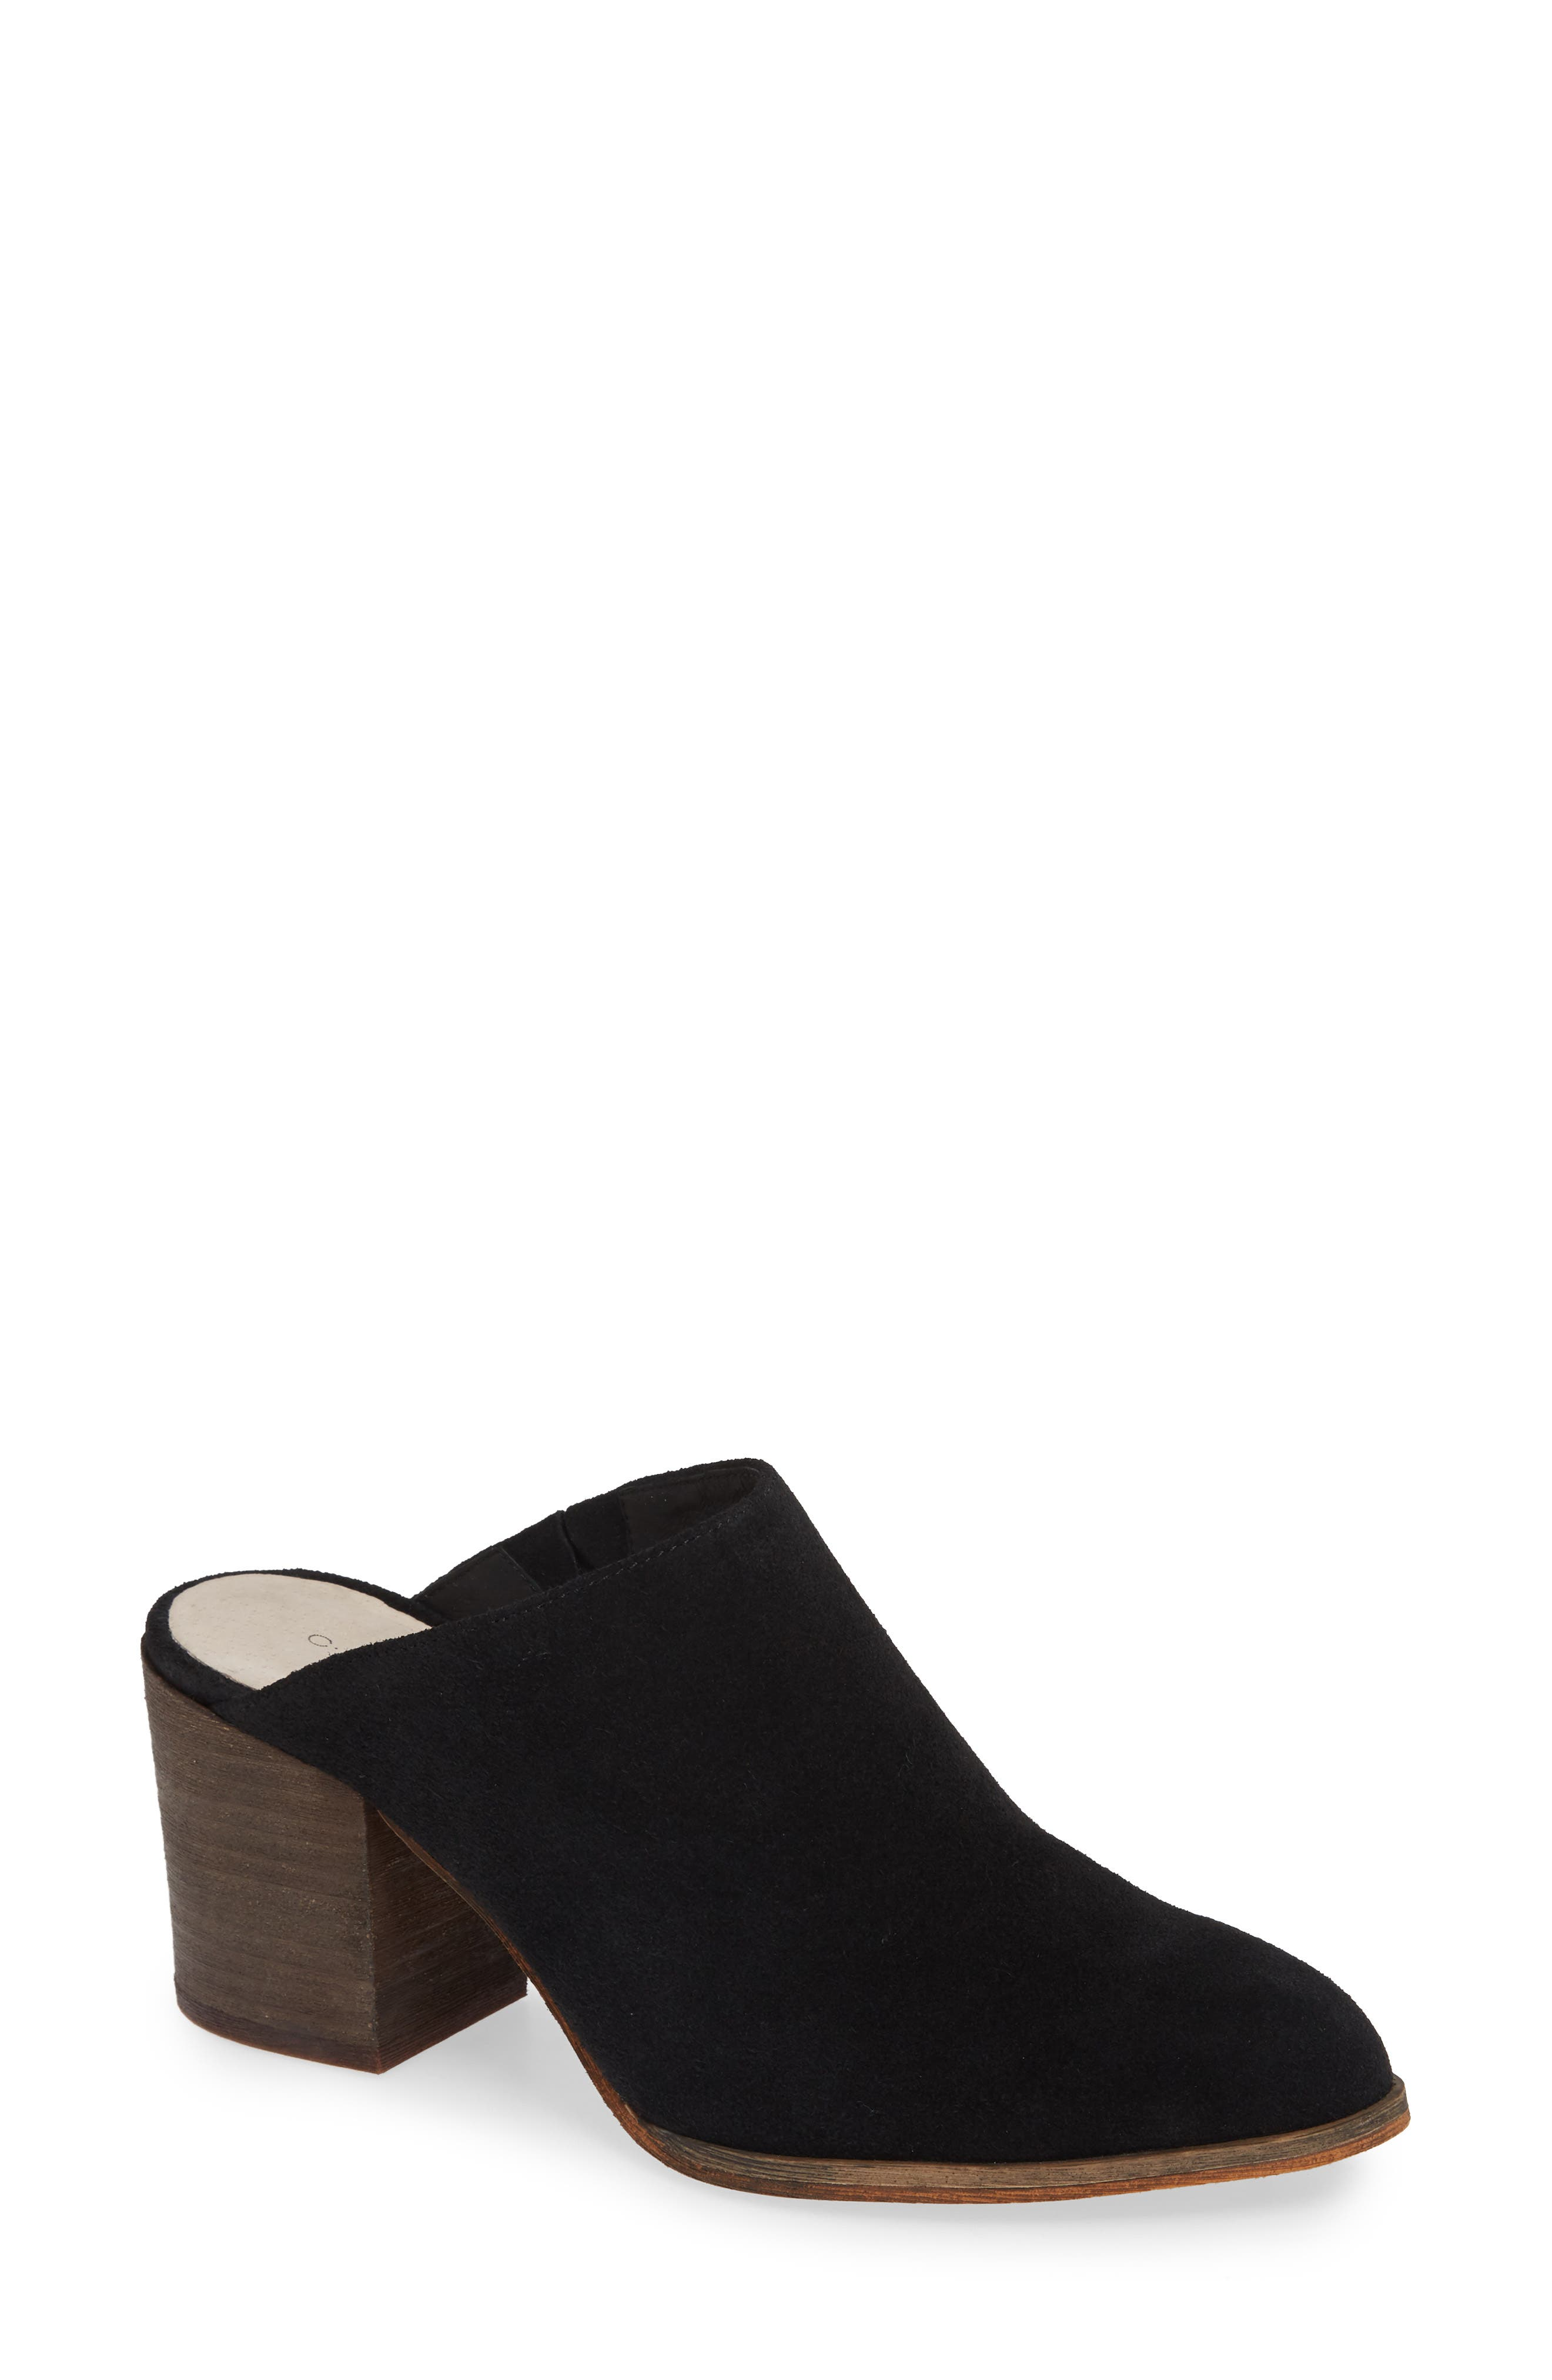 Miccah Mule,                         Main,                         color, BLACK SUEDE